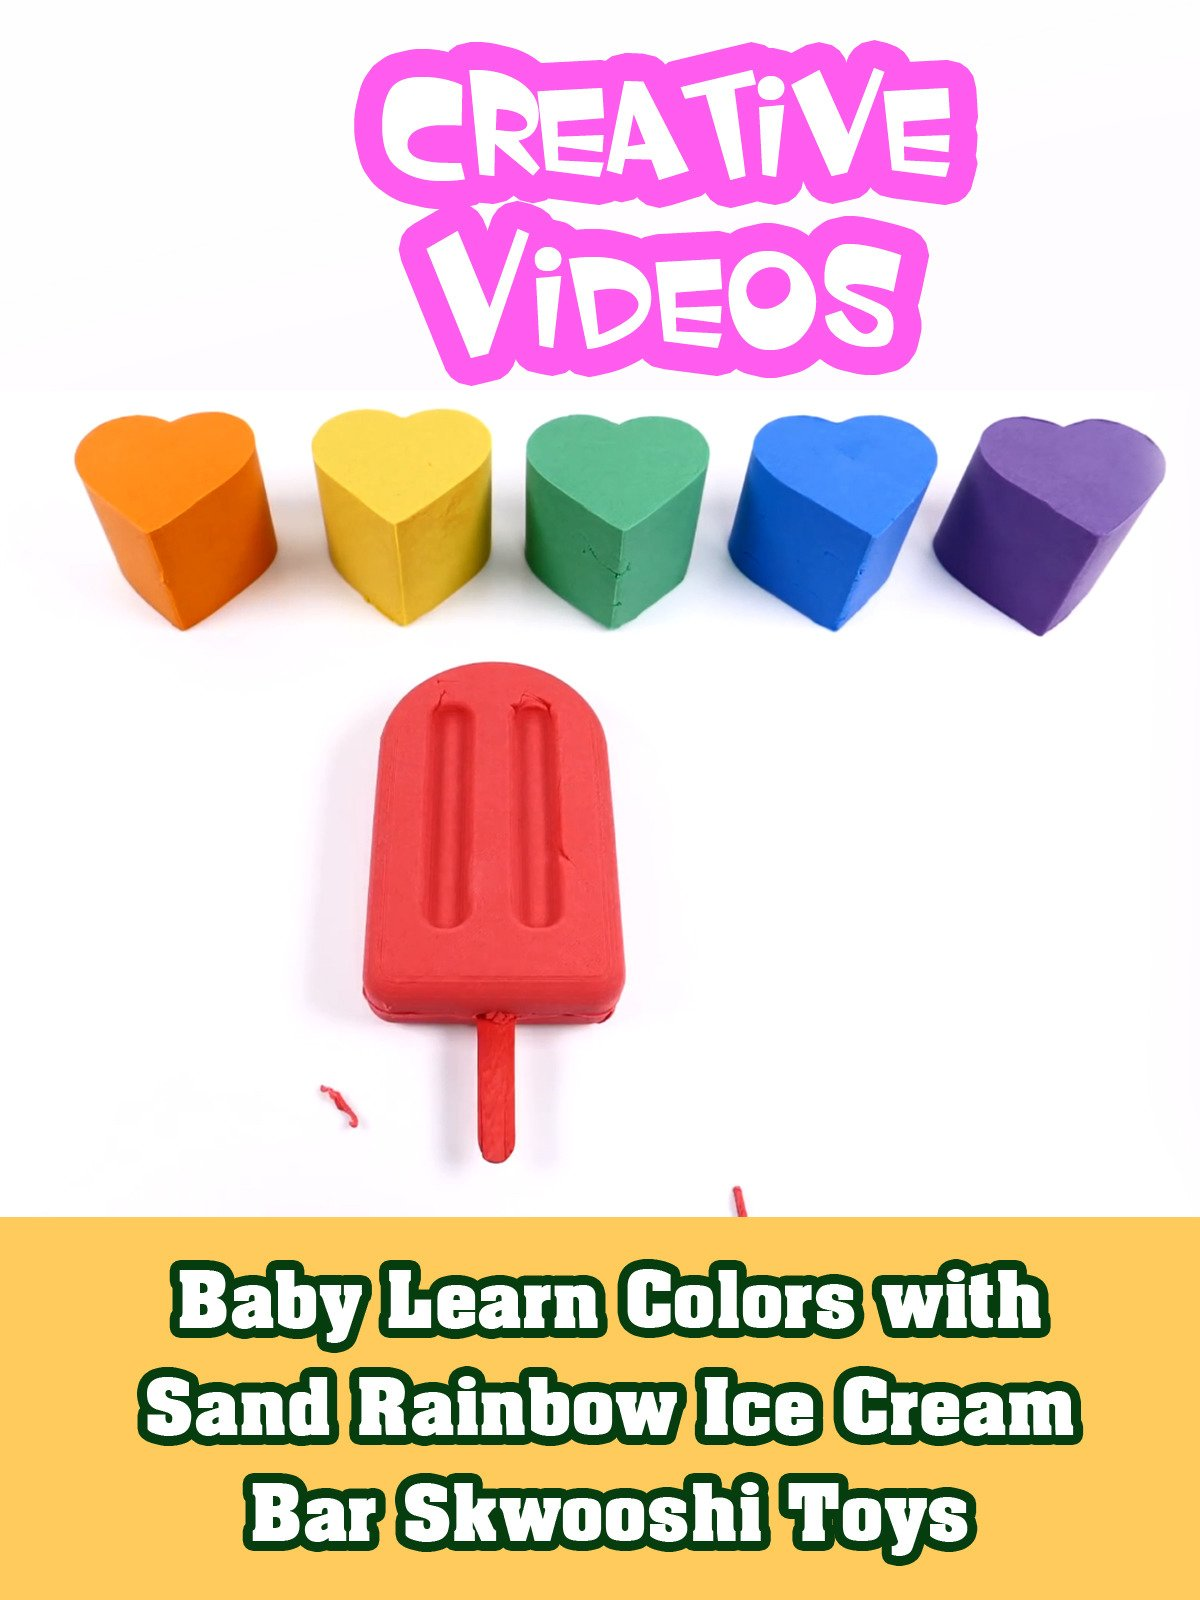 Baby Learn Colors with Sand Rainbow Ice Cream Bar Skwooshi Toys